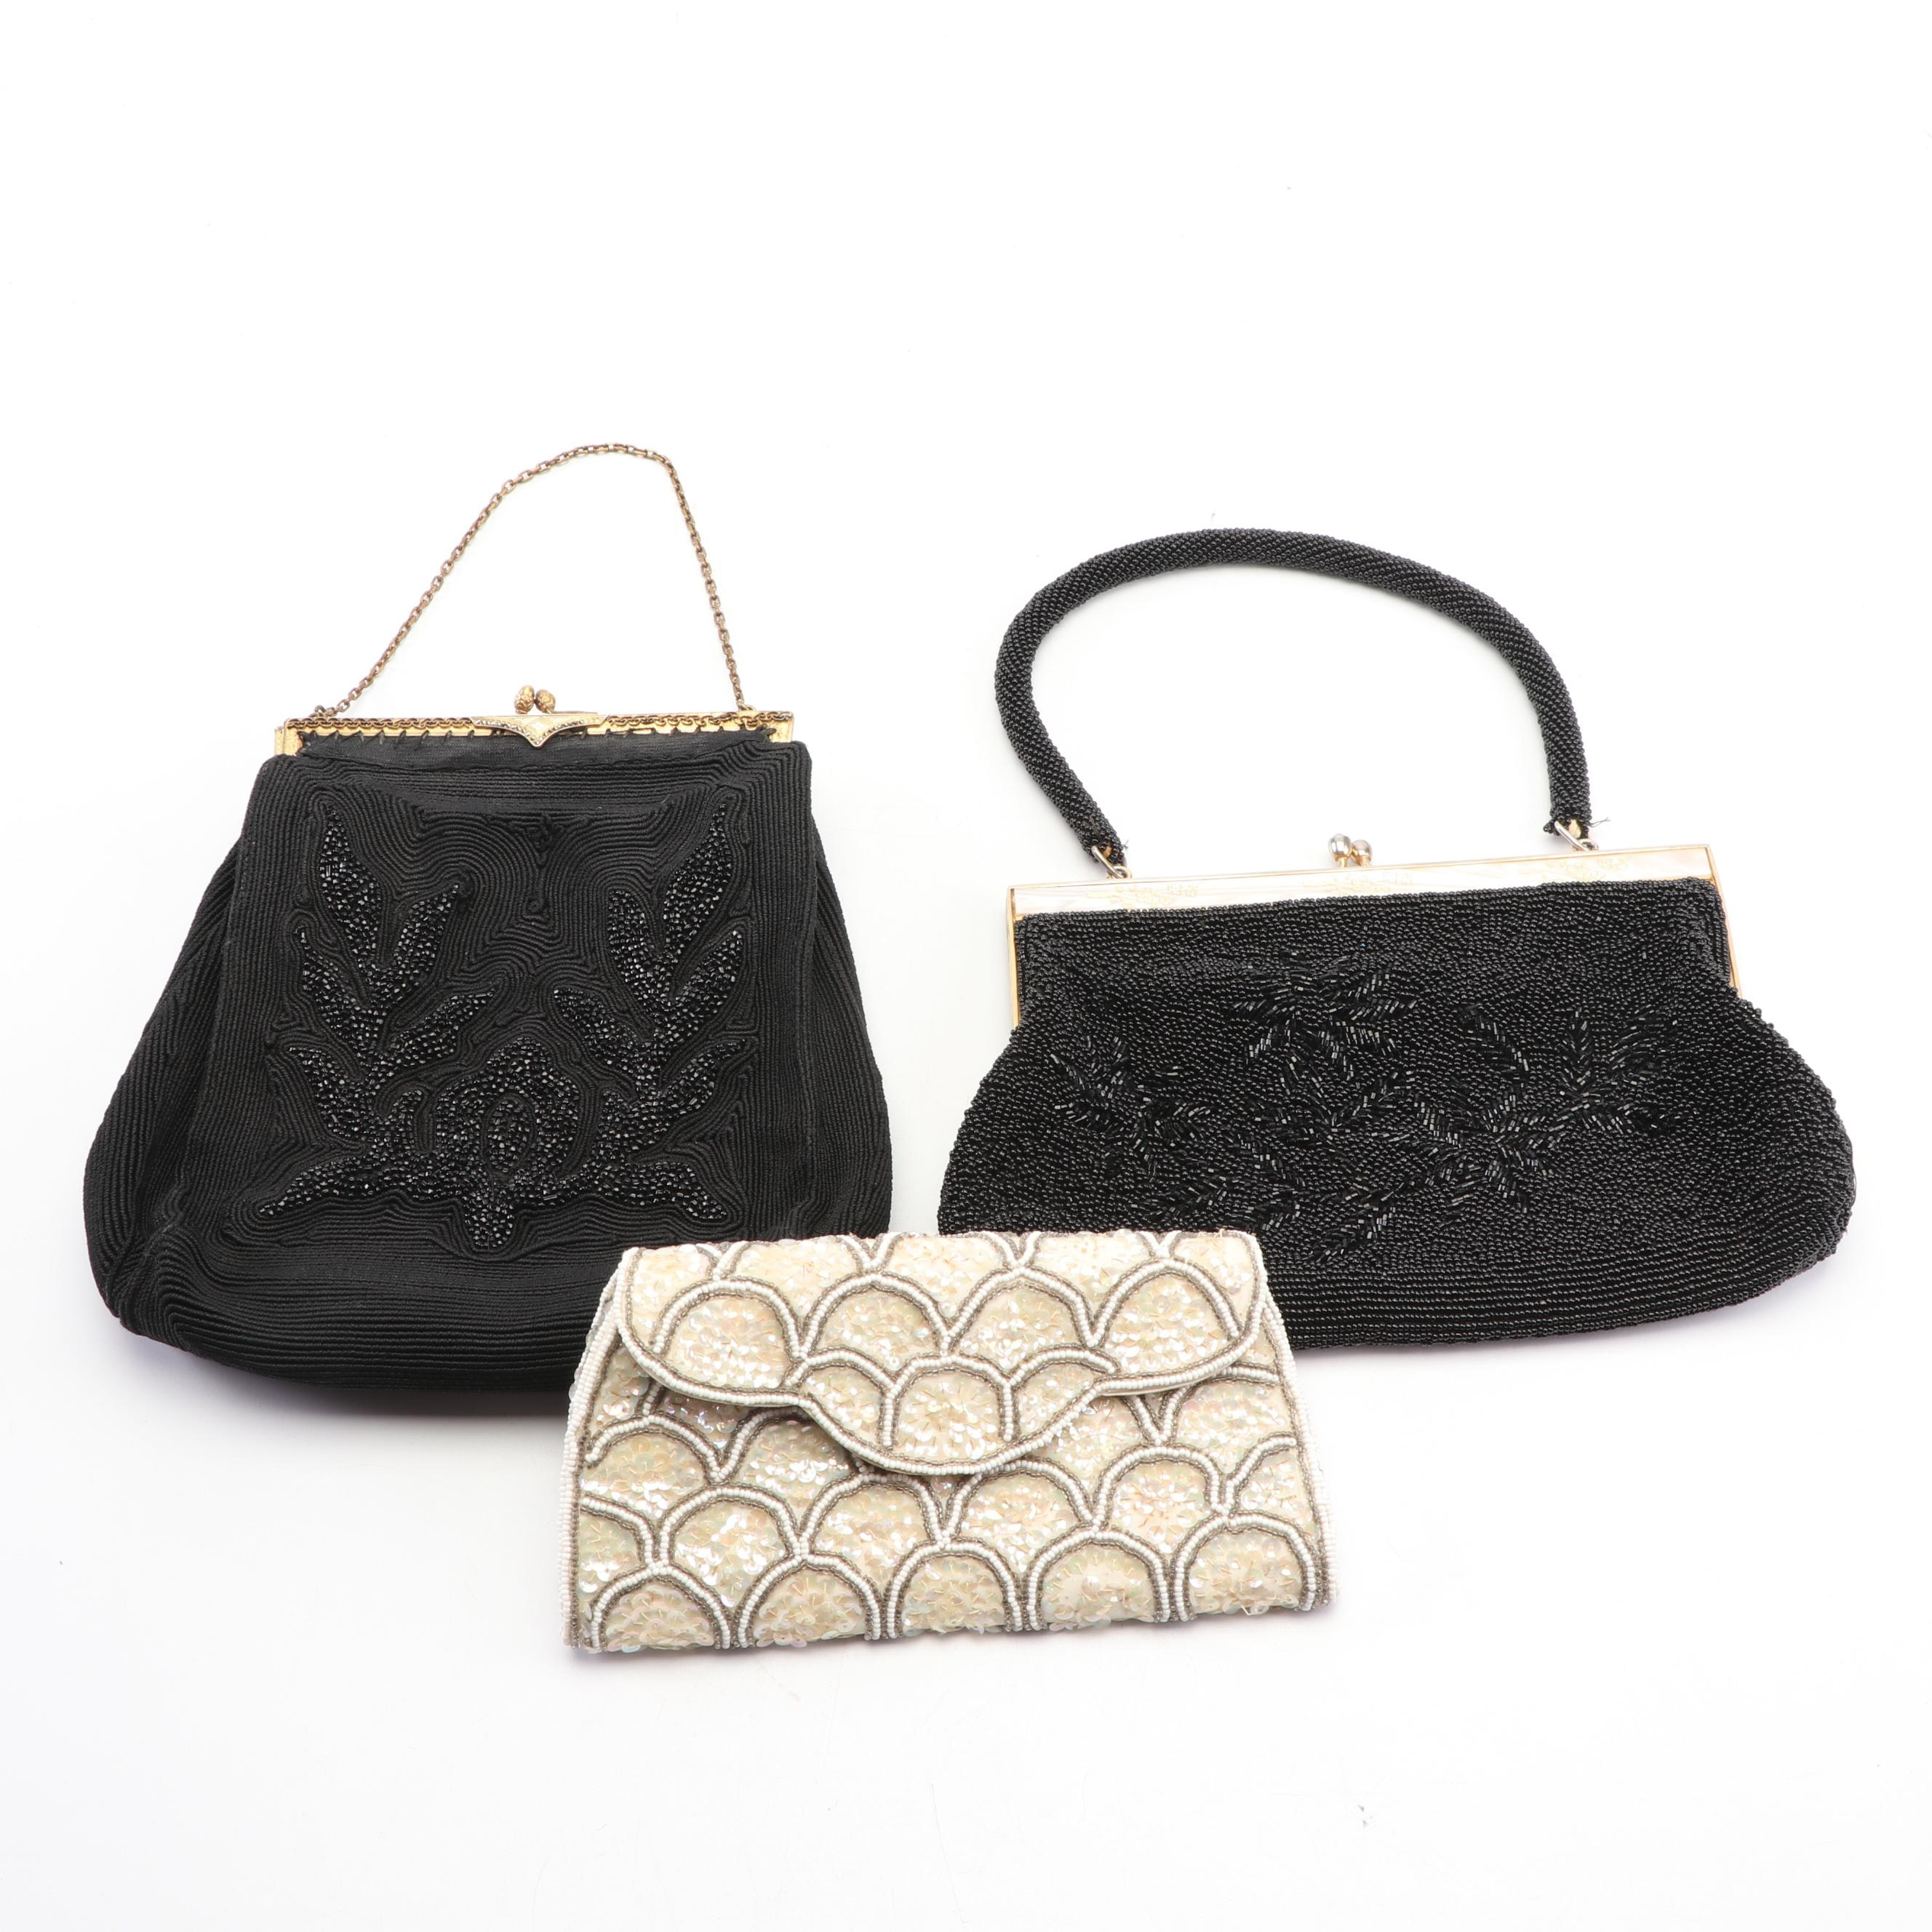 Beaded and Sequined Evening Bags and Clutch Including Cordé, Mid-20th Century